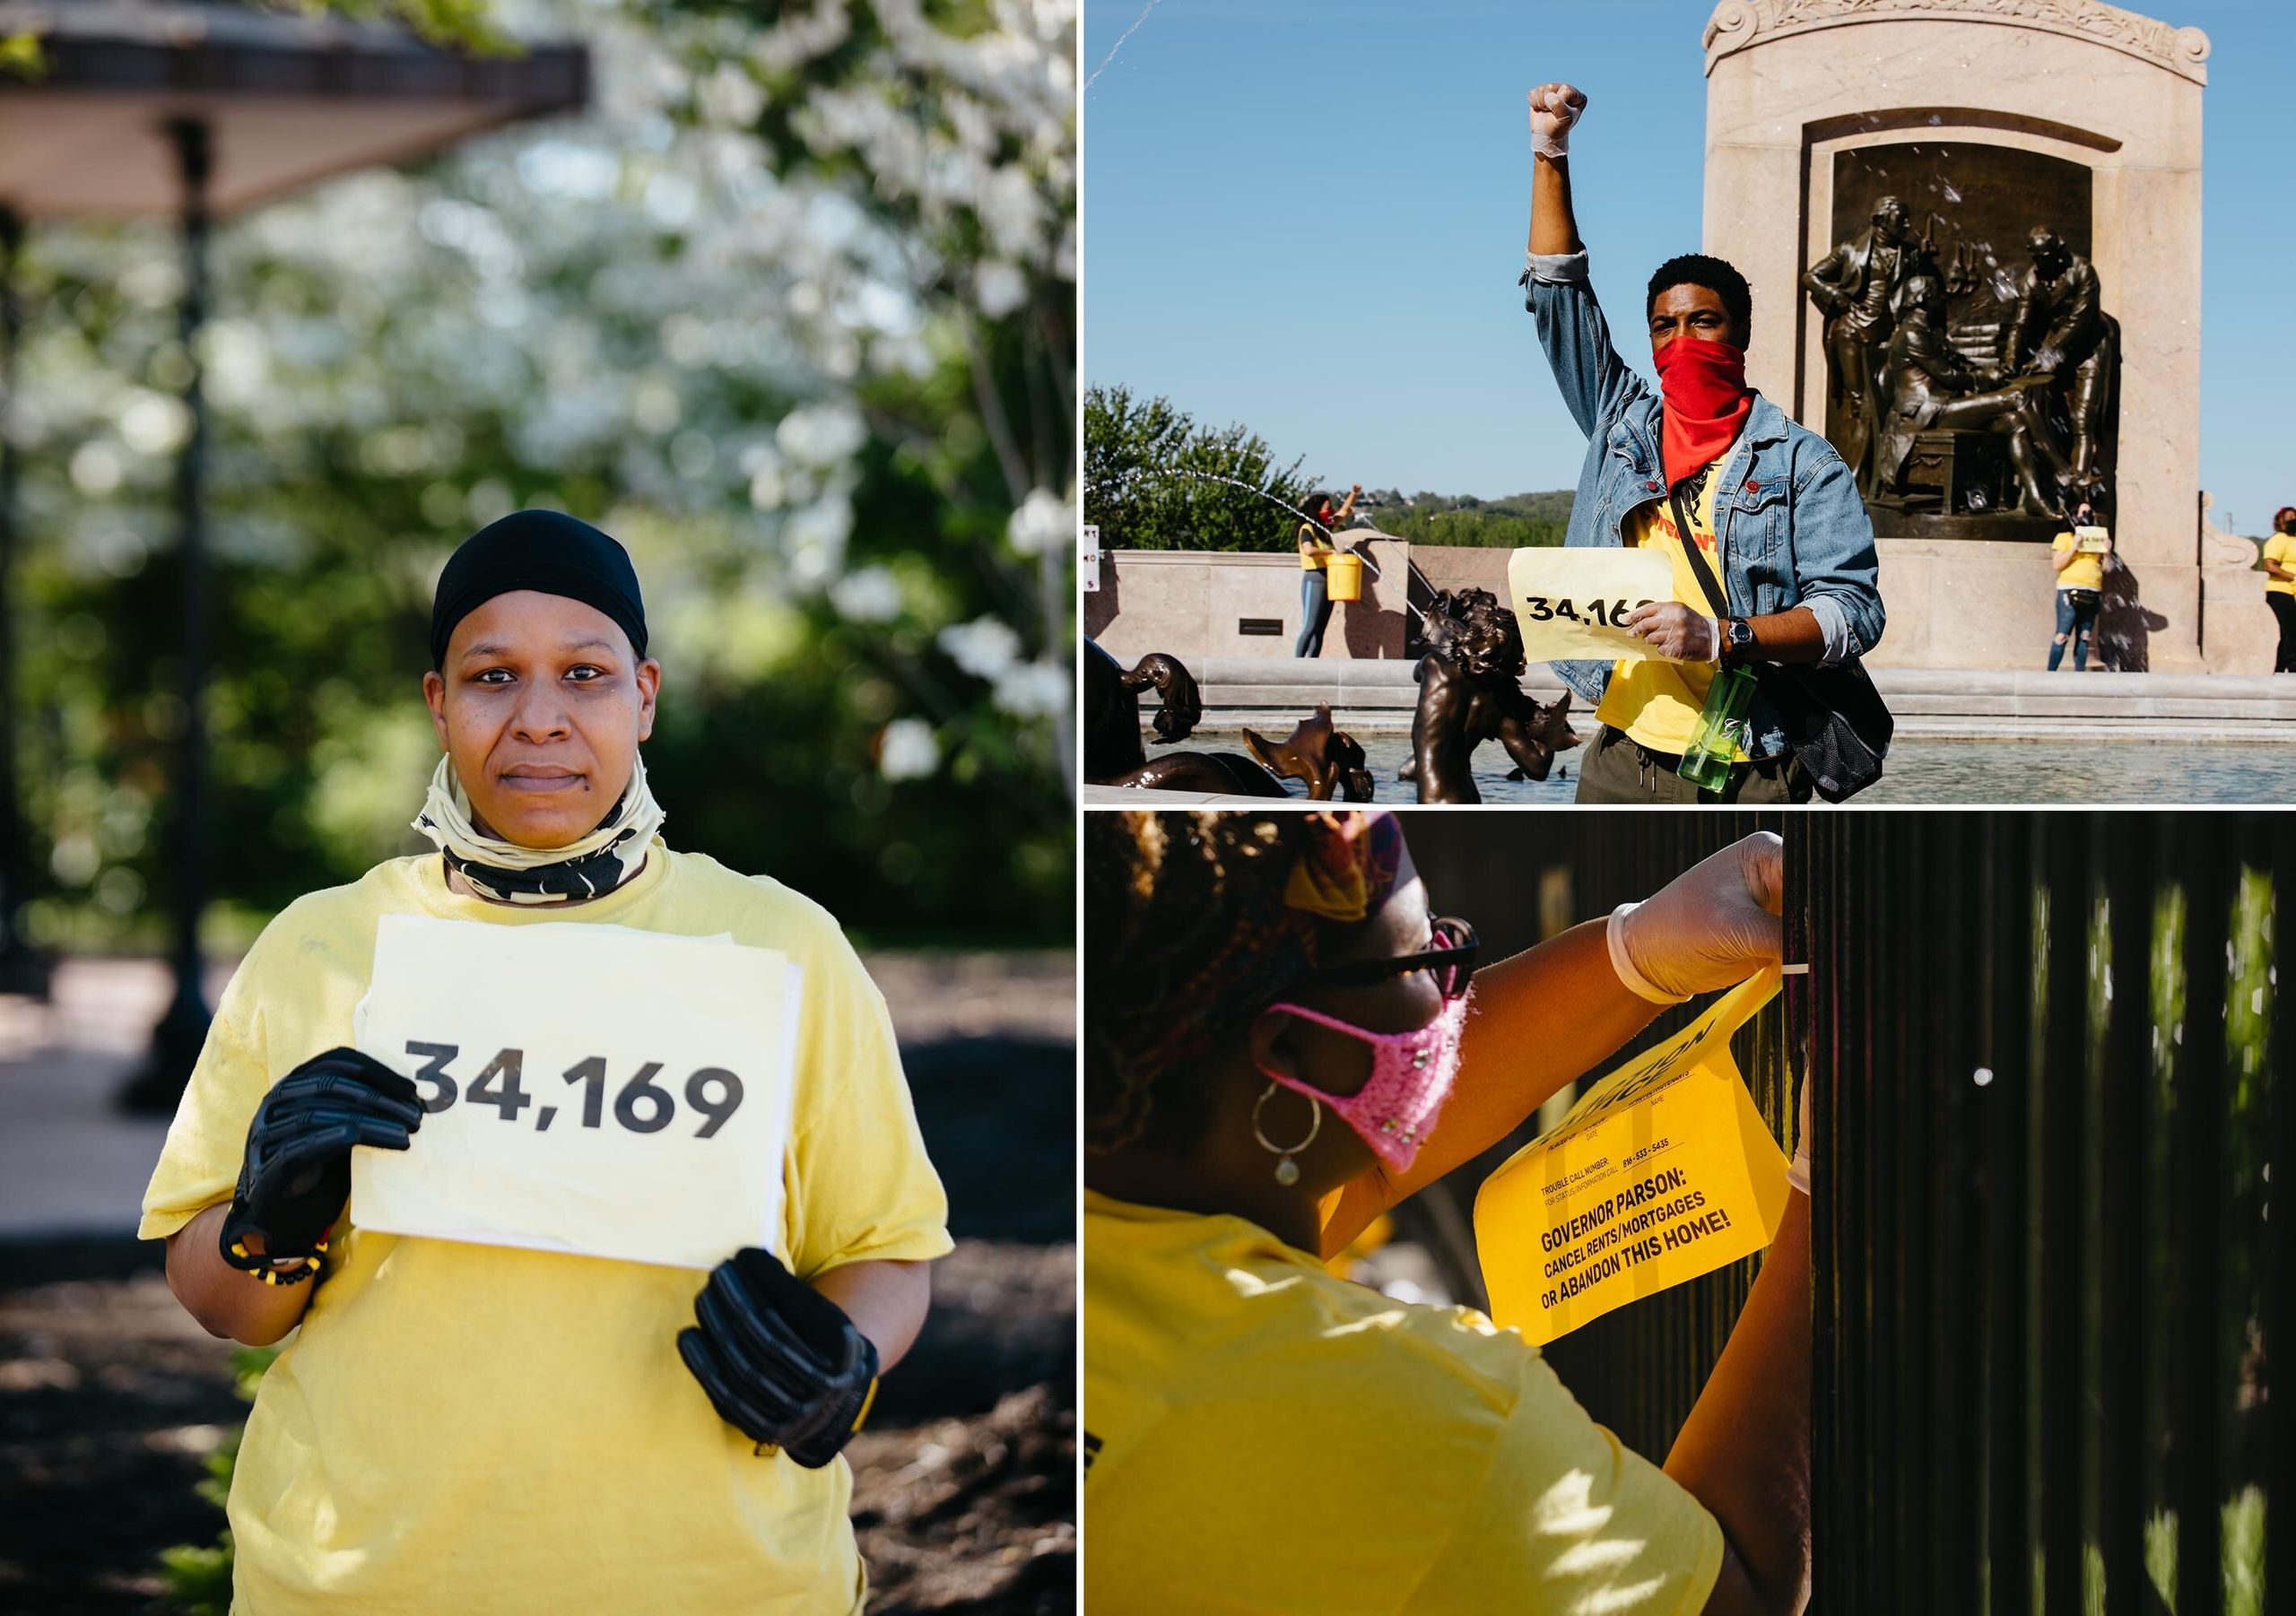 Tiana Caldwell is a tenant from Kansas City, Missouri. She is a two-time cancer survivor and an instructor at a community col